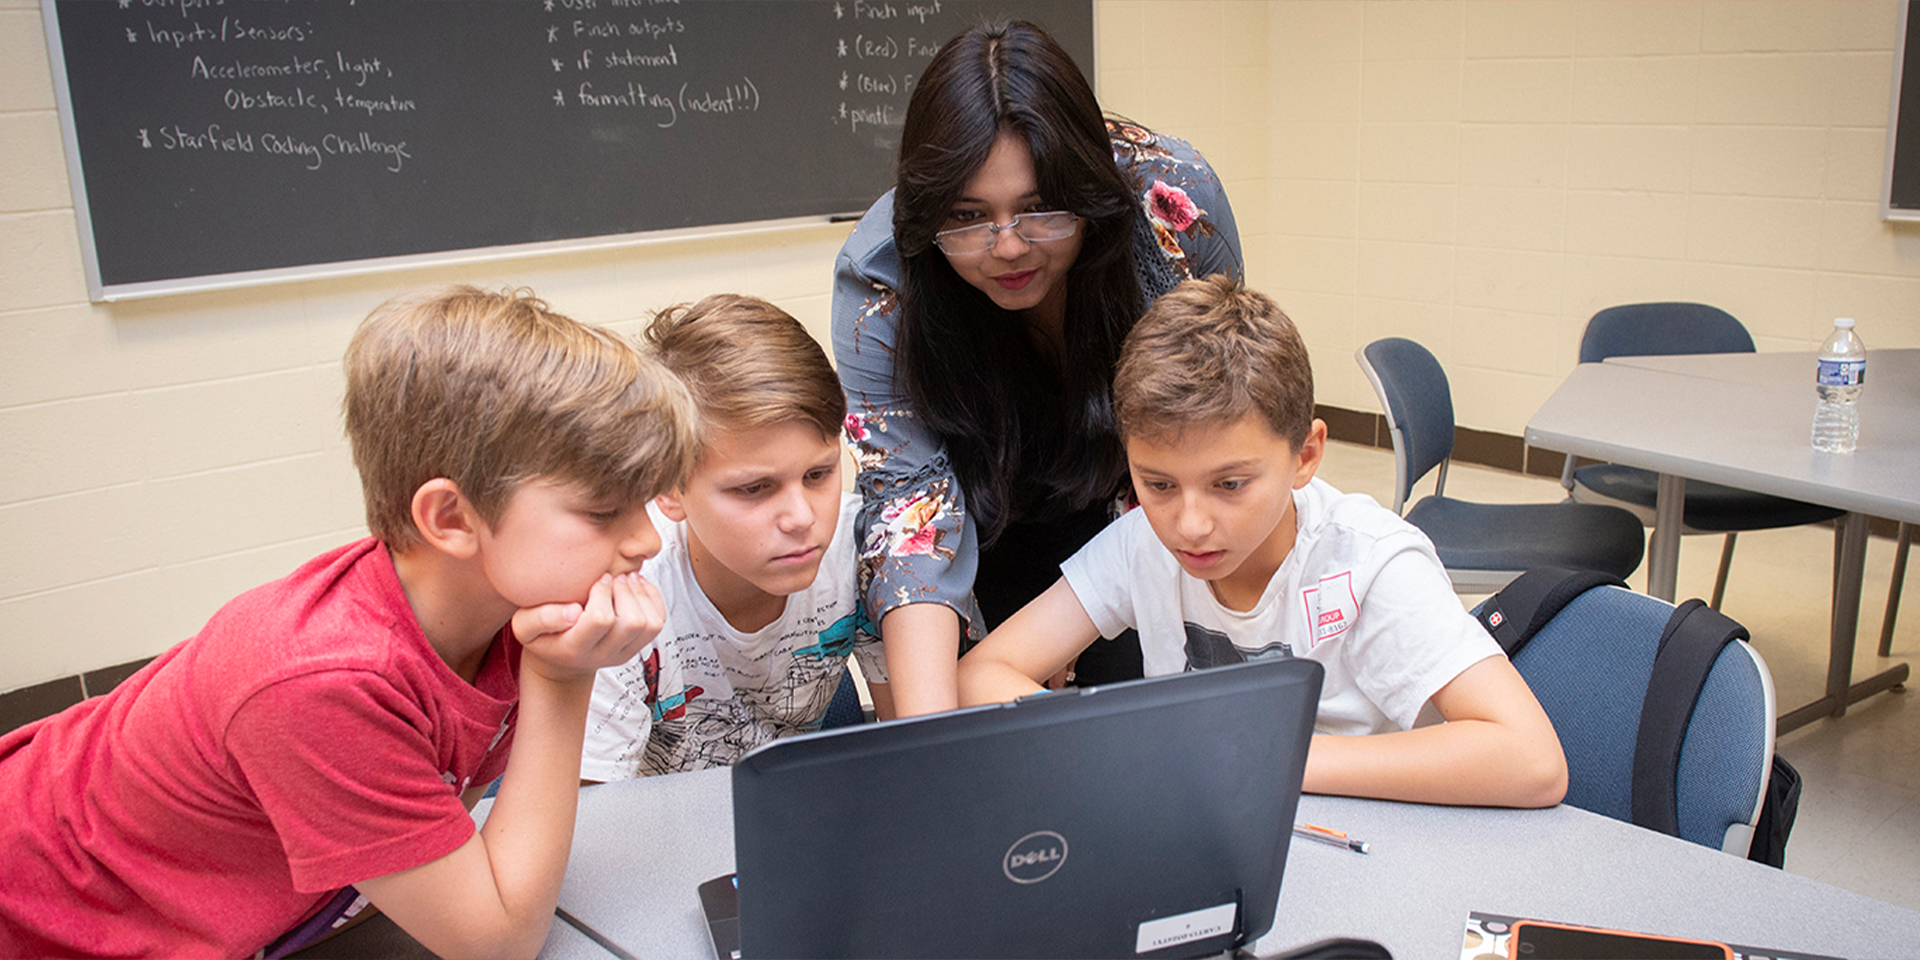 Teacher helping students with computer assignment